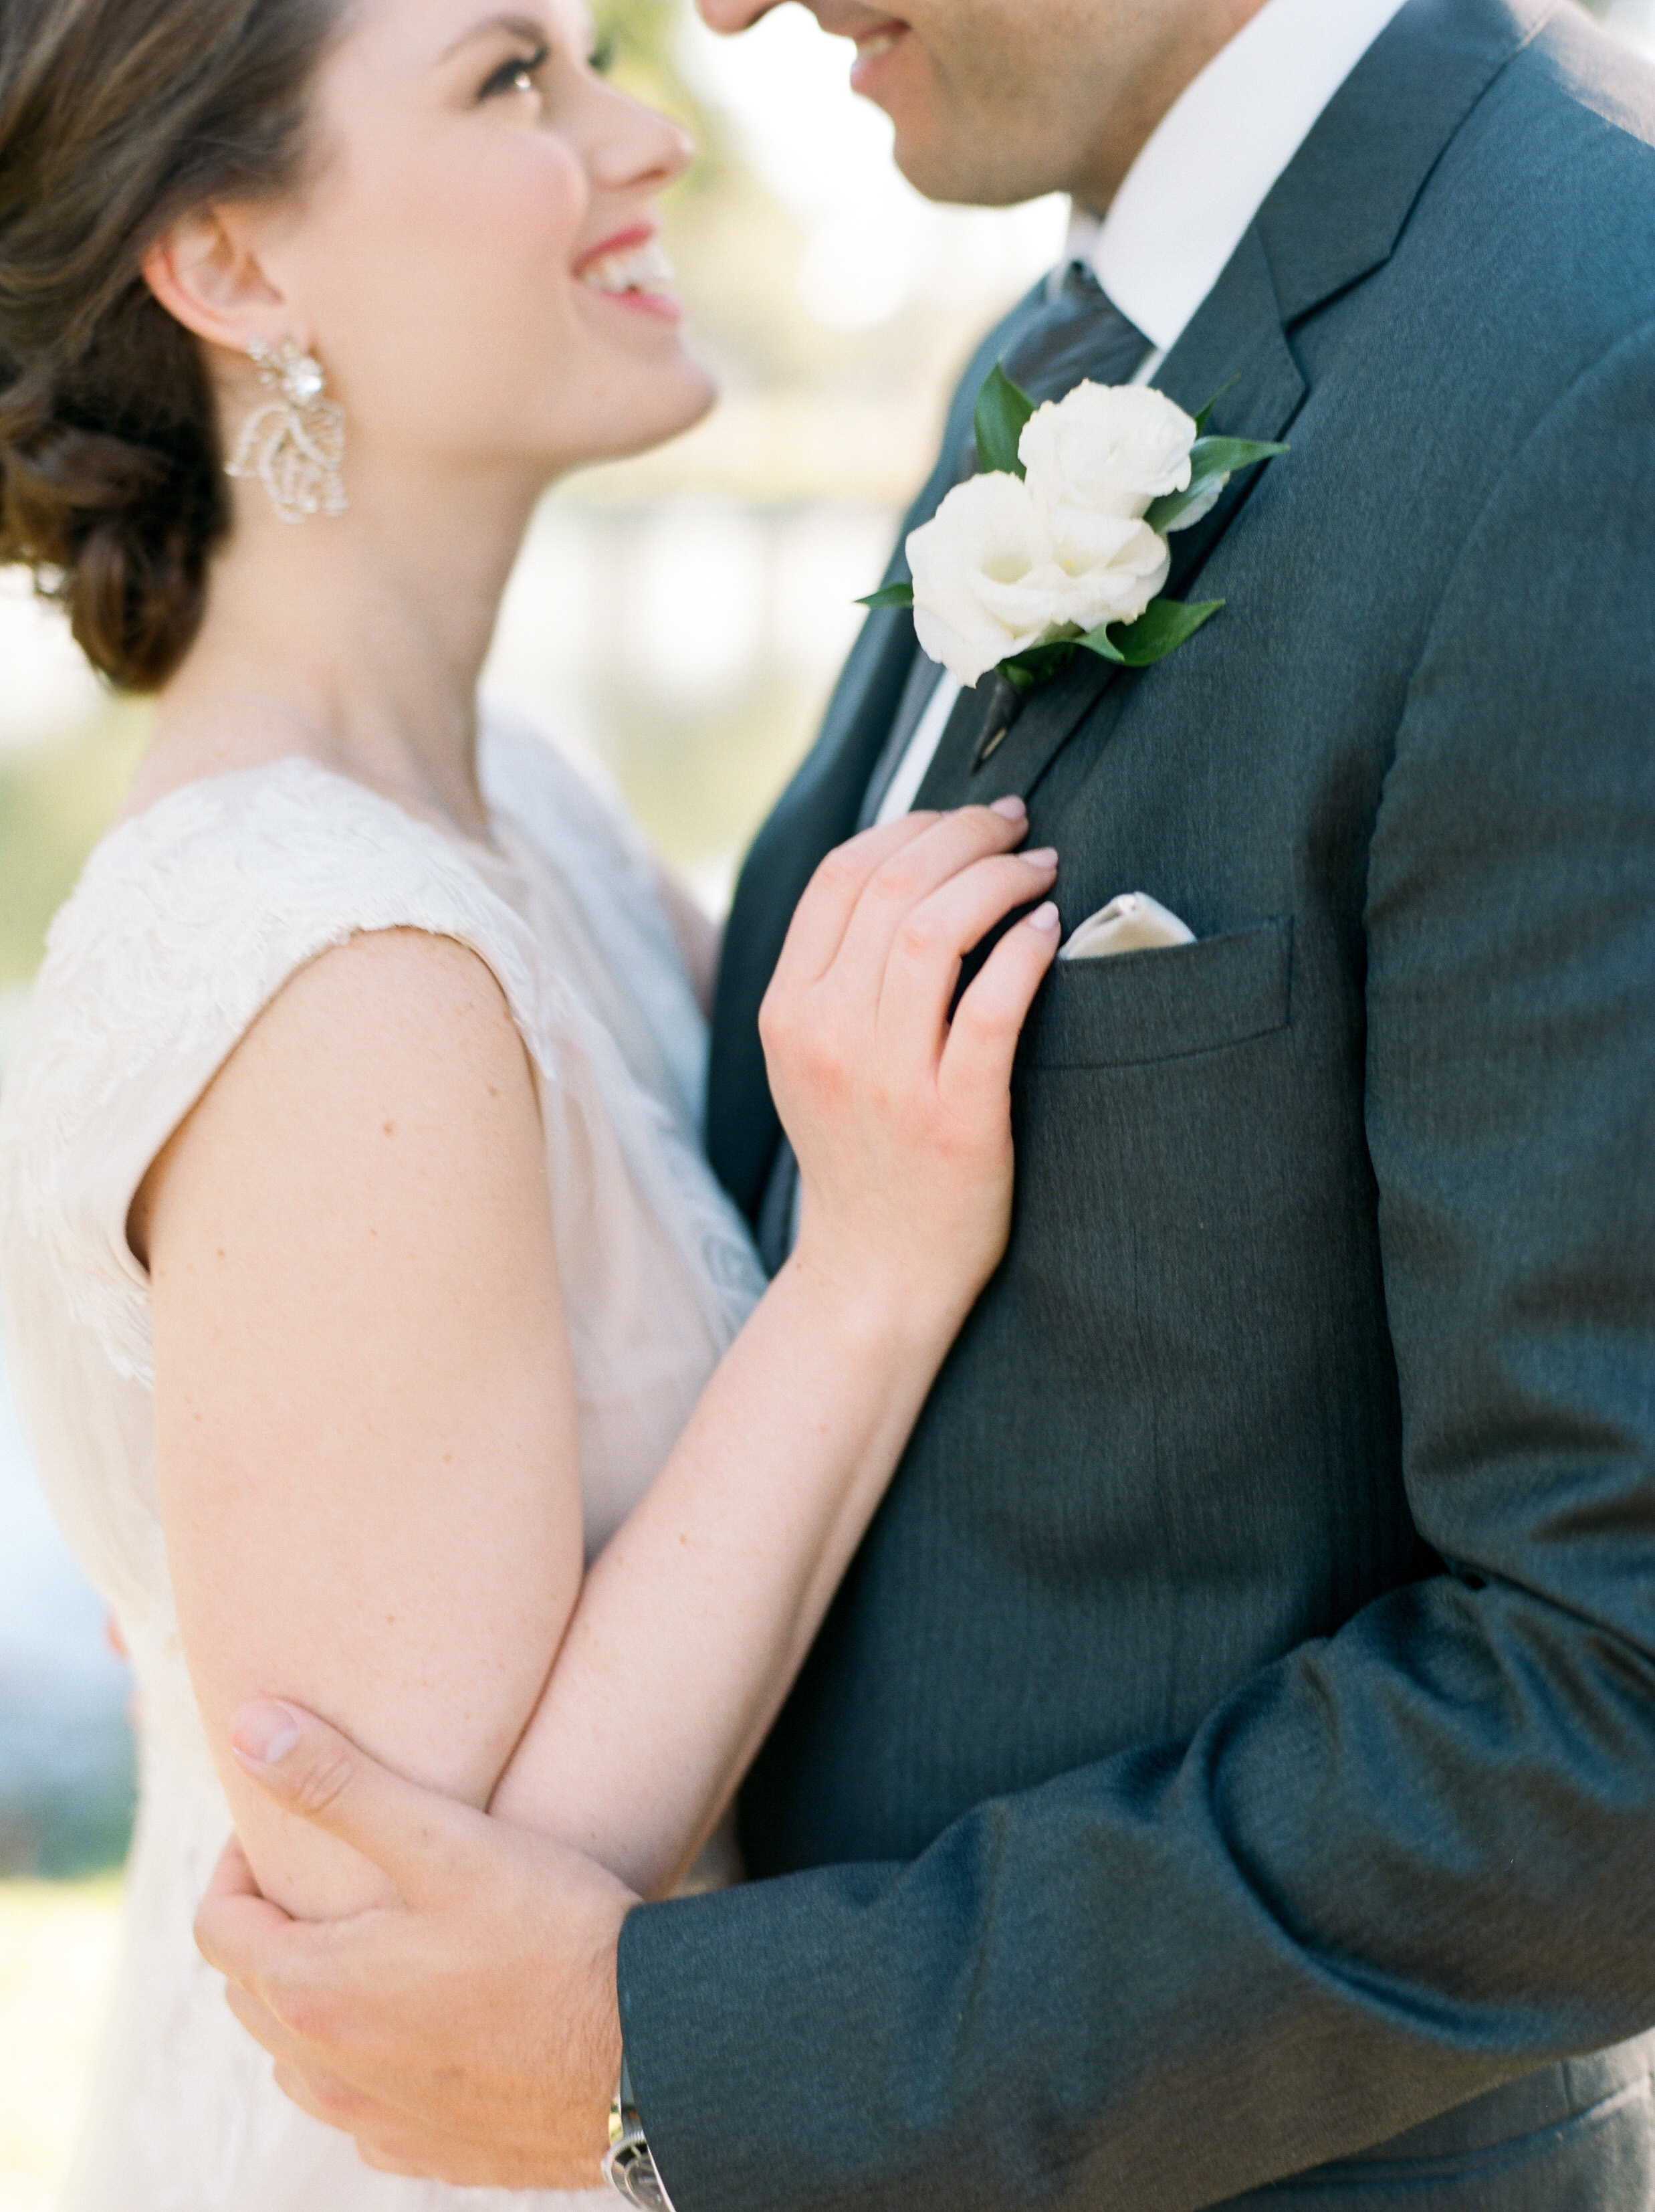 Houston-Wedding-Photographer-Lakeside-Country-Club-First-Look-Bride-Groom-Formals-Film-Fine-Art-Photography-24.jpg